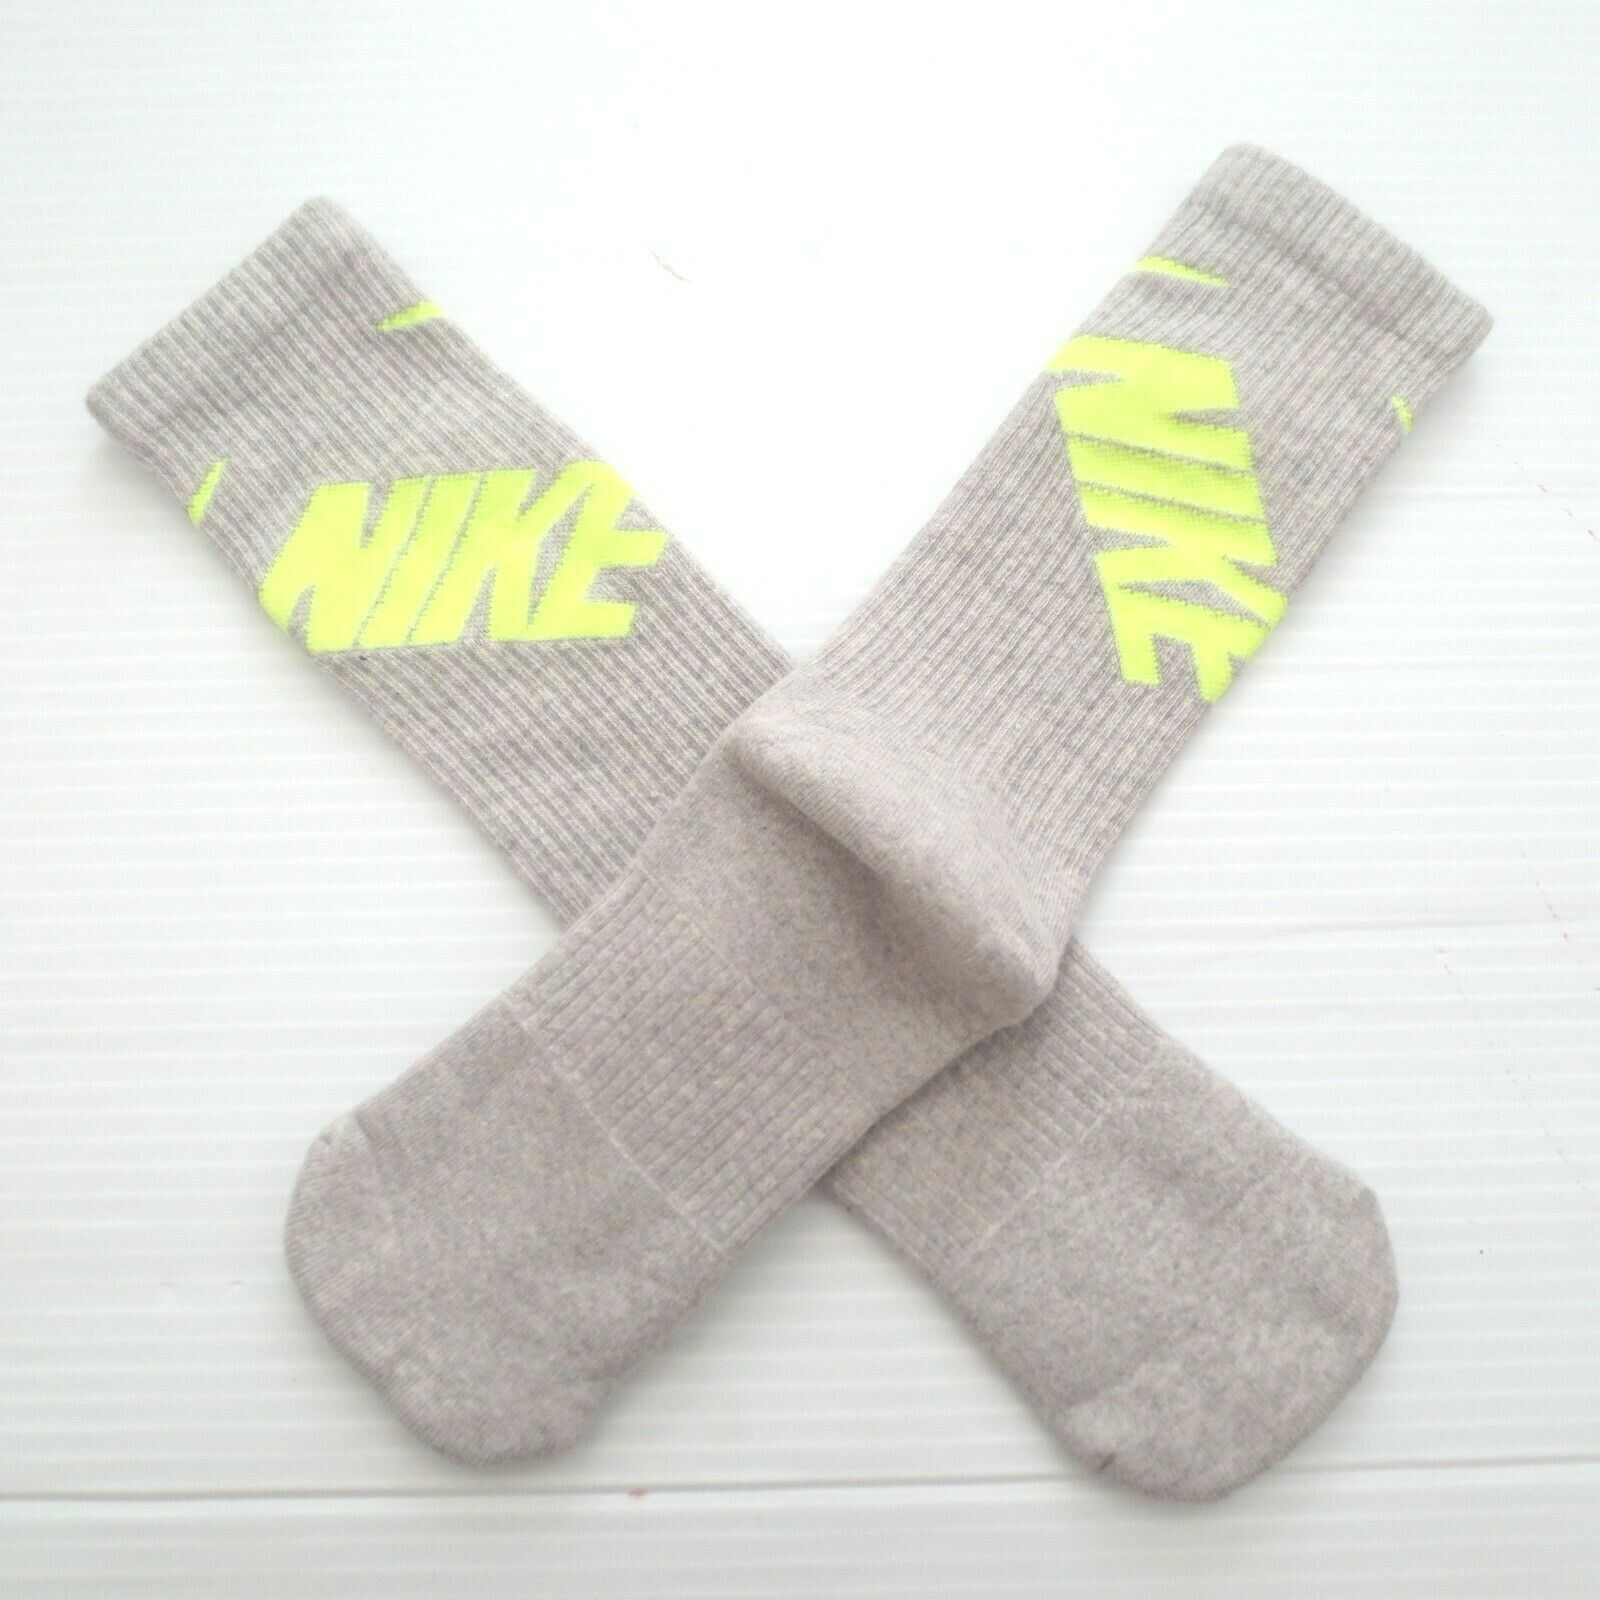 Nike Youth Performance Crew Socks - SX4715 - Gray - Size M (5Y-7Y) - NEW